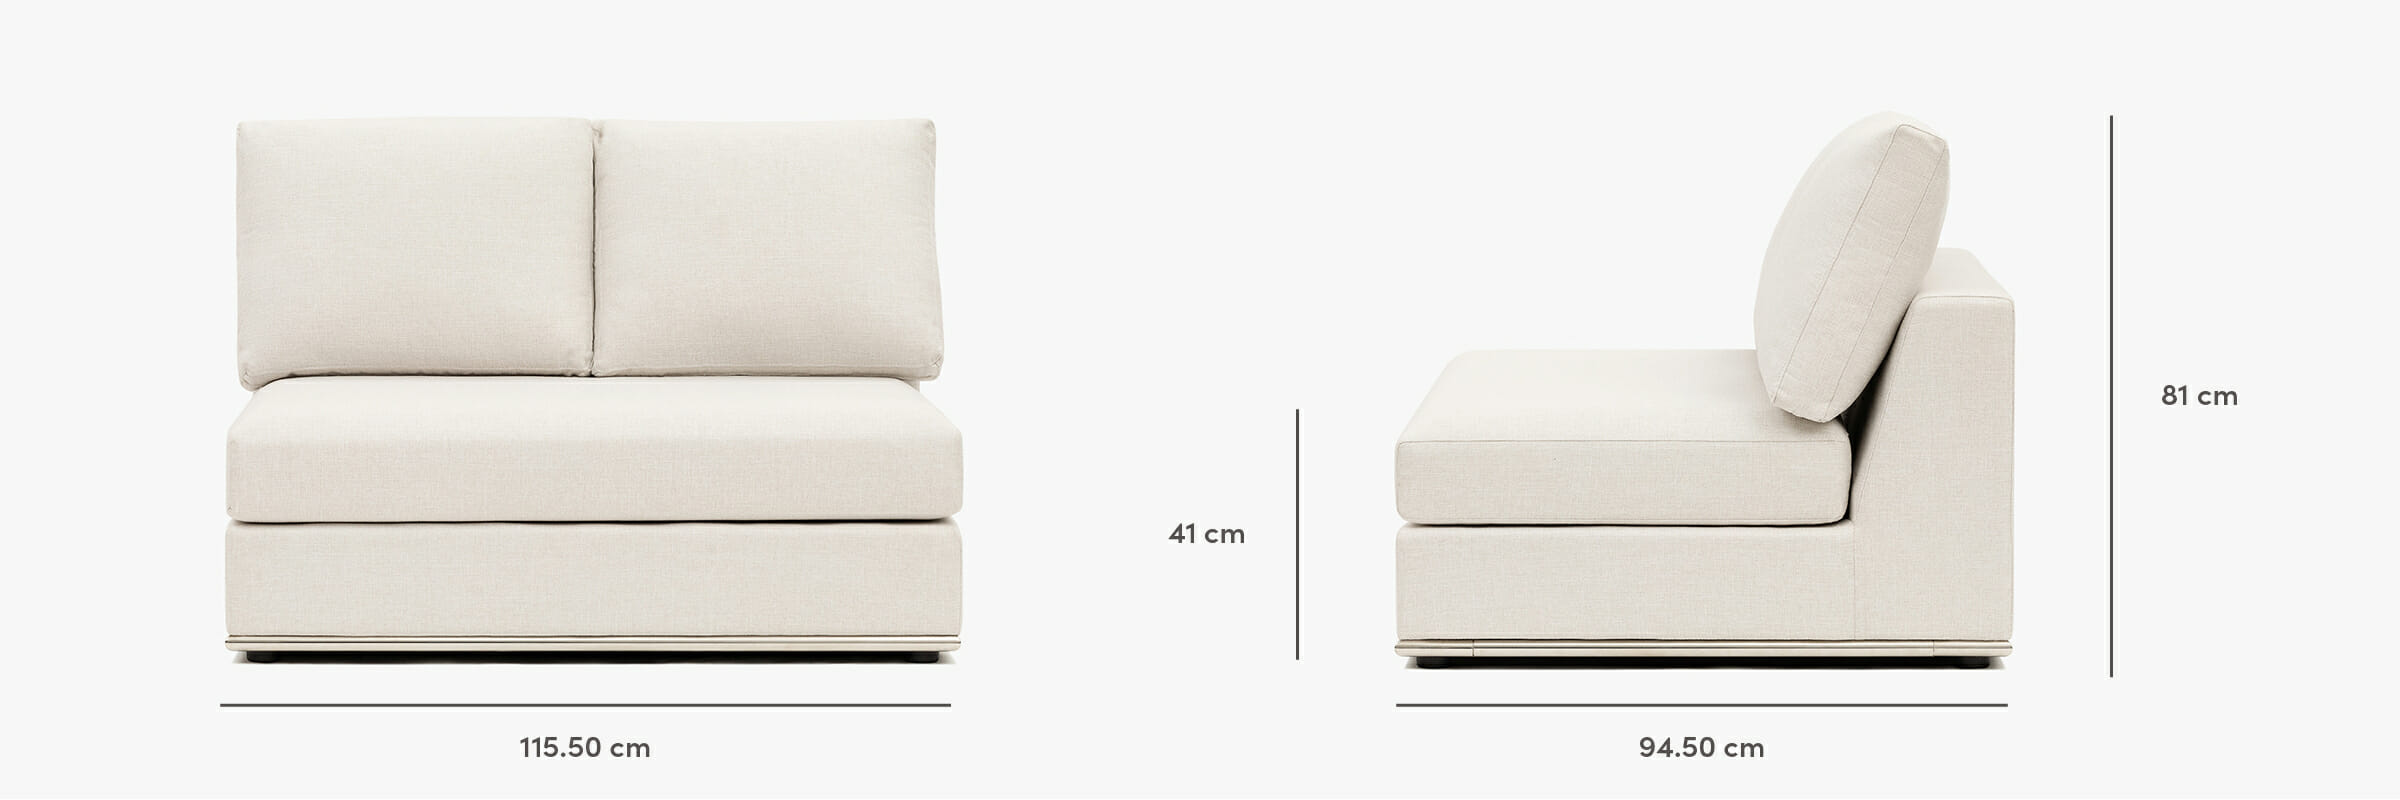 The Flow Armless Chair - dimensions